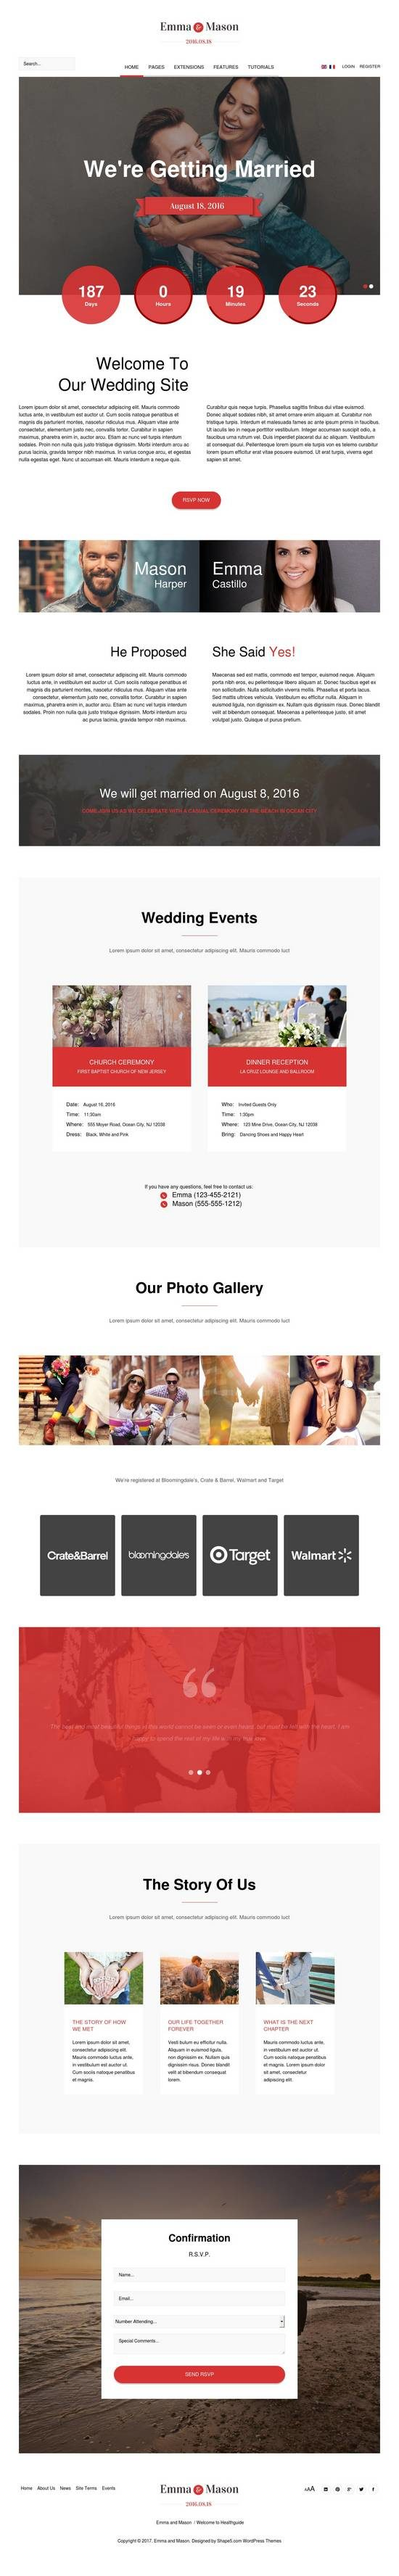 emma and mason wedding shape5 wordpress theme 01 550x3552 - Emma and Mason Wedding WordPress Theme